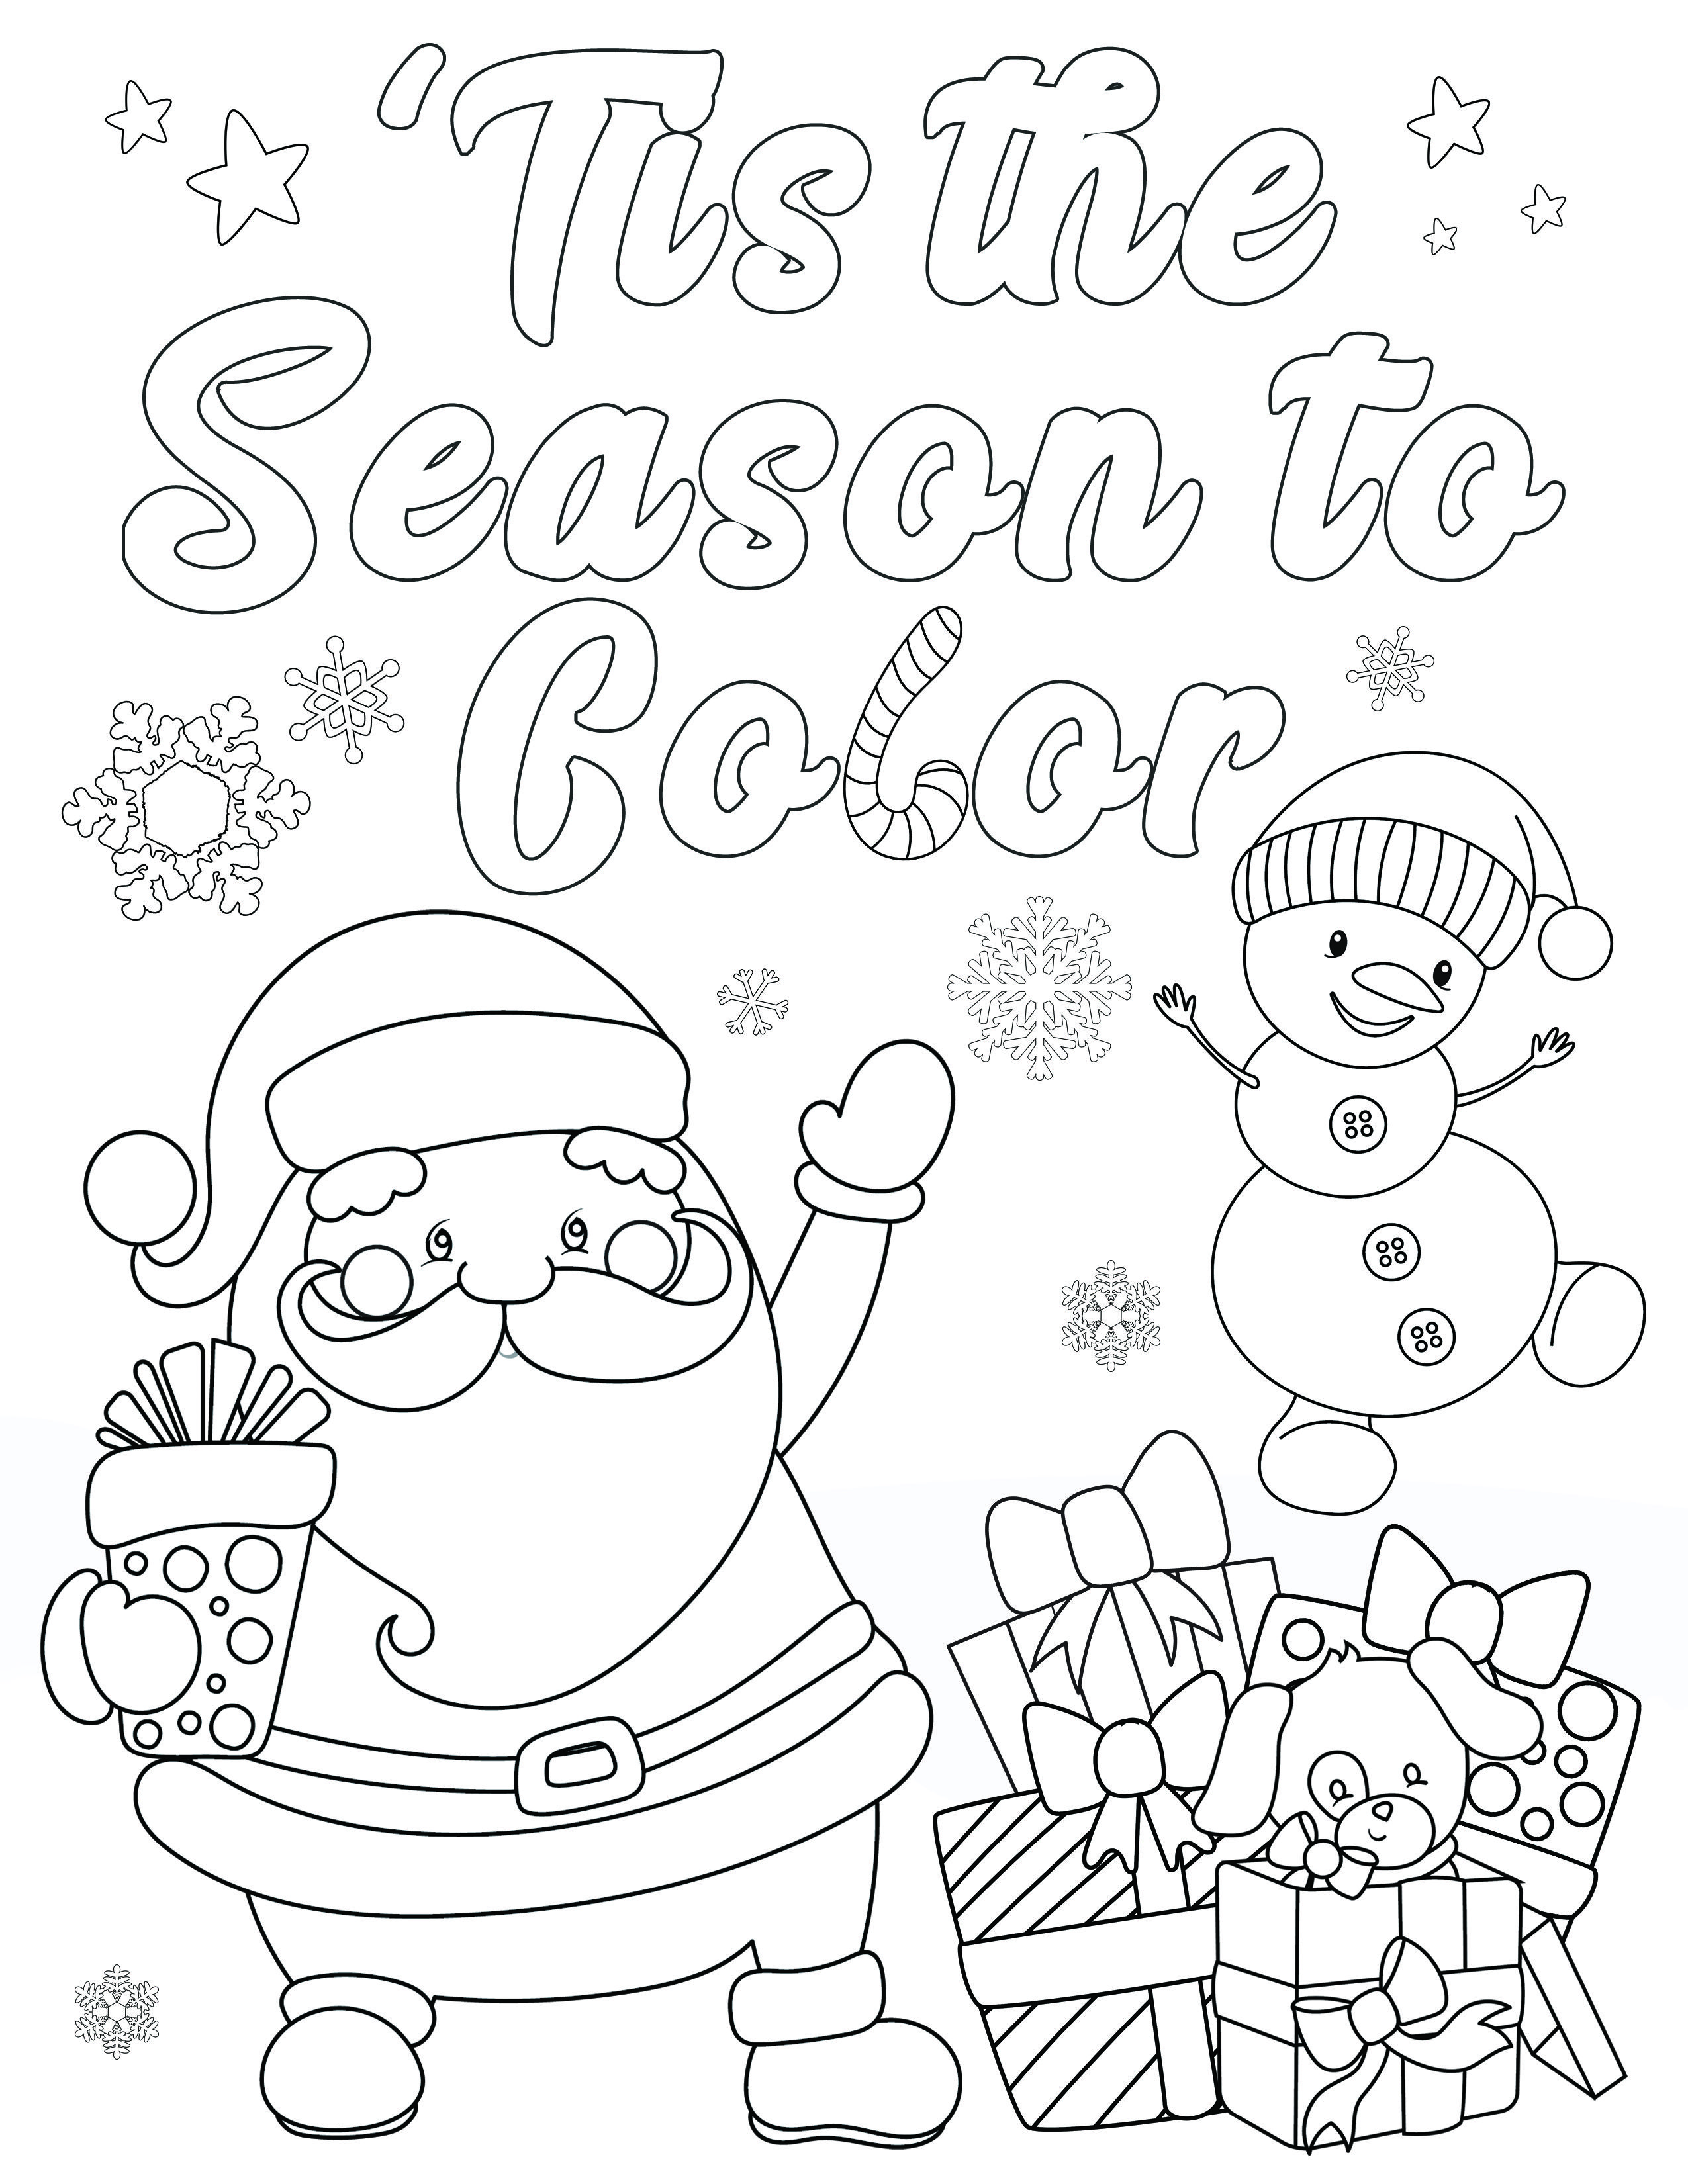 Free Christmas Coloring Pages For Adults And Kids Printable Christmas Coloring Pages Free Christmas Coloring Pages Christmas Coloring Pages